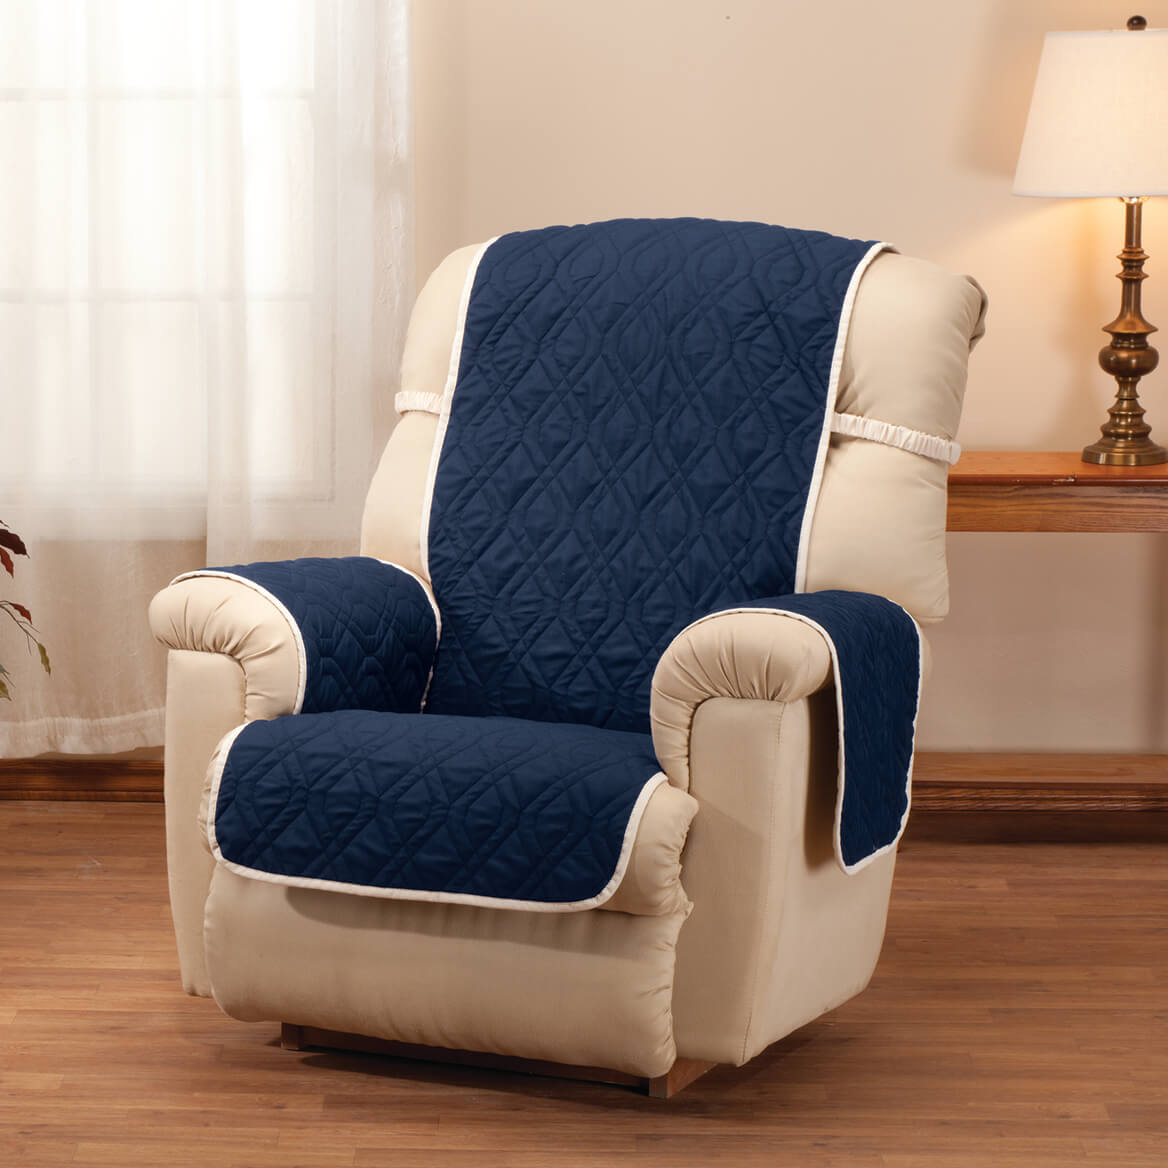 Waterproof Chair Covers Deluxe Reversible Waterproof Recliner Chair Cover Miles